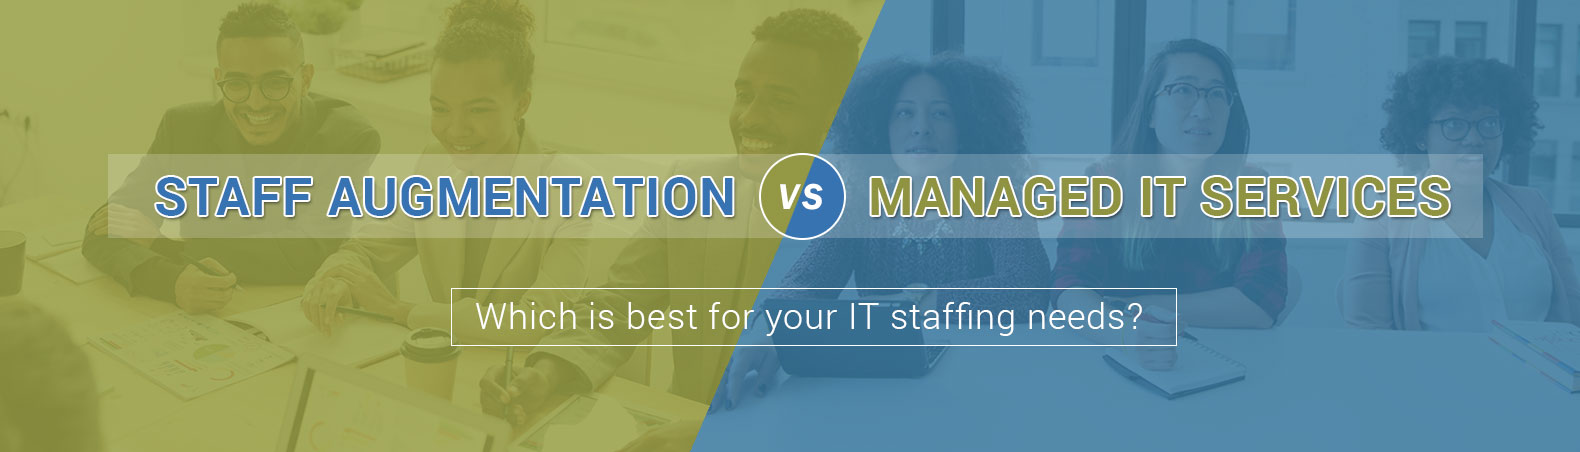 Staff Augmentation Vs Managed IT Services – Which is best for your IT staffing needs?